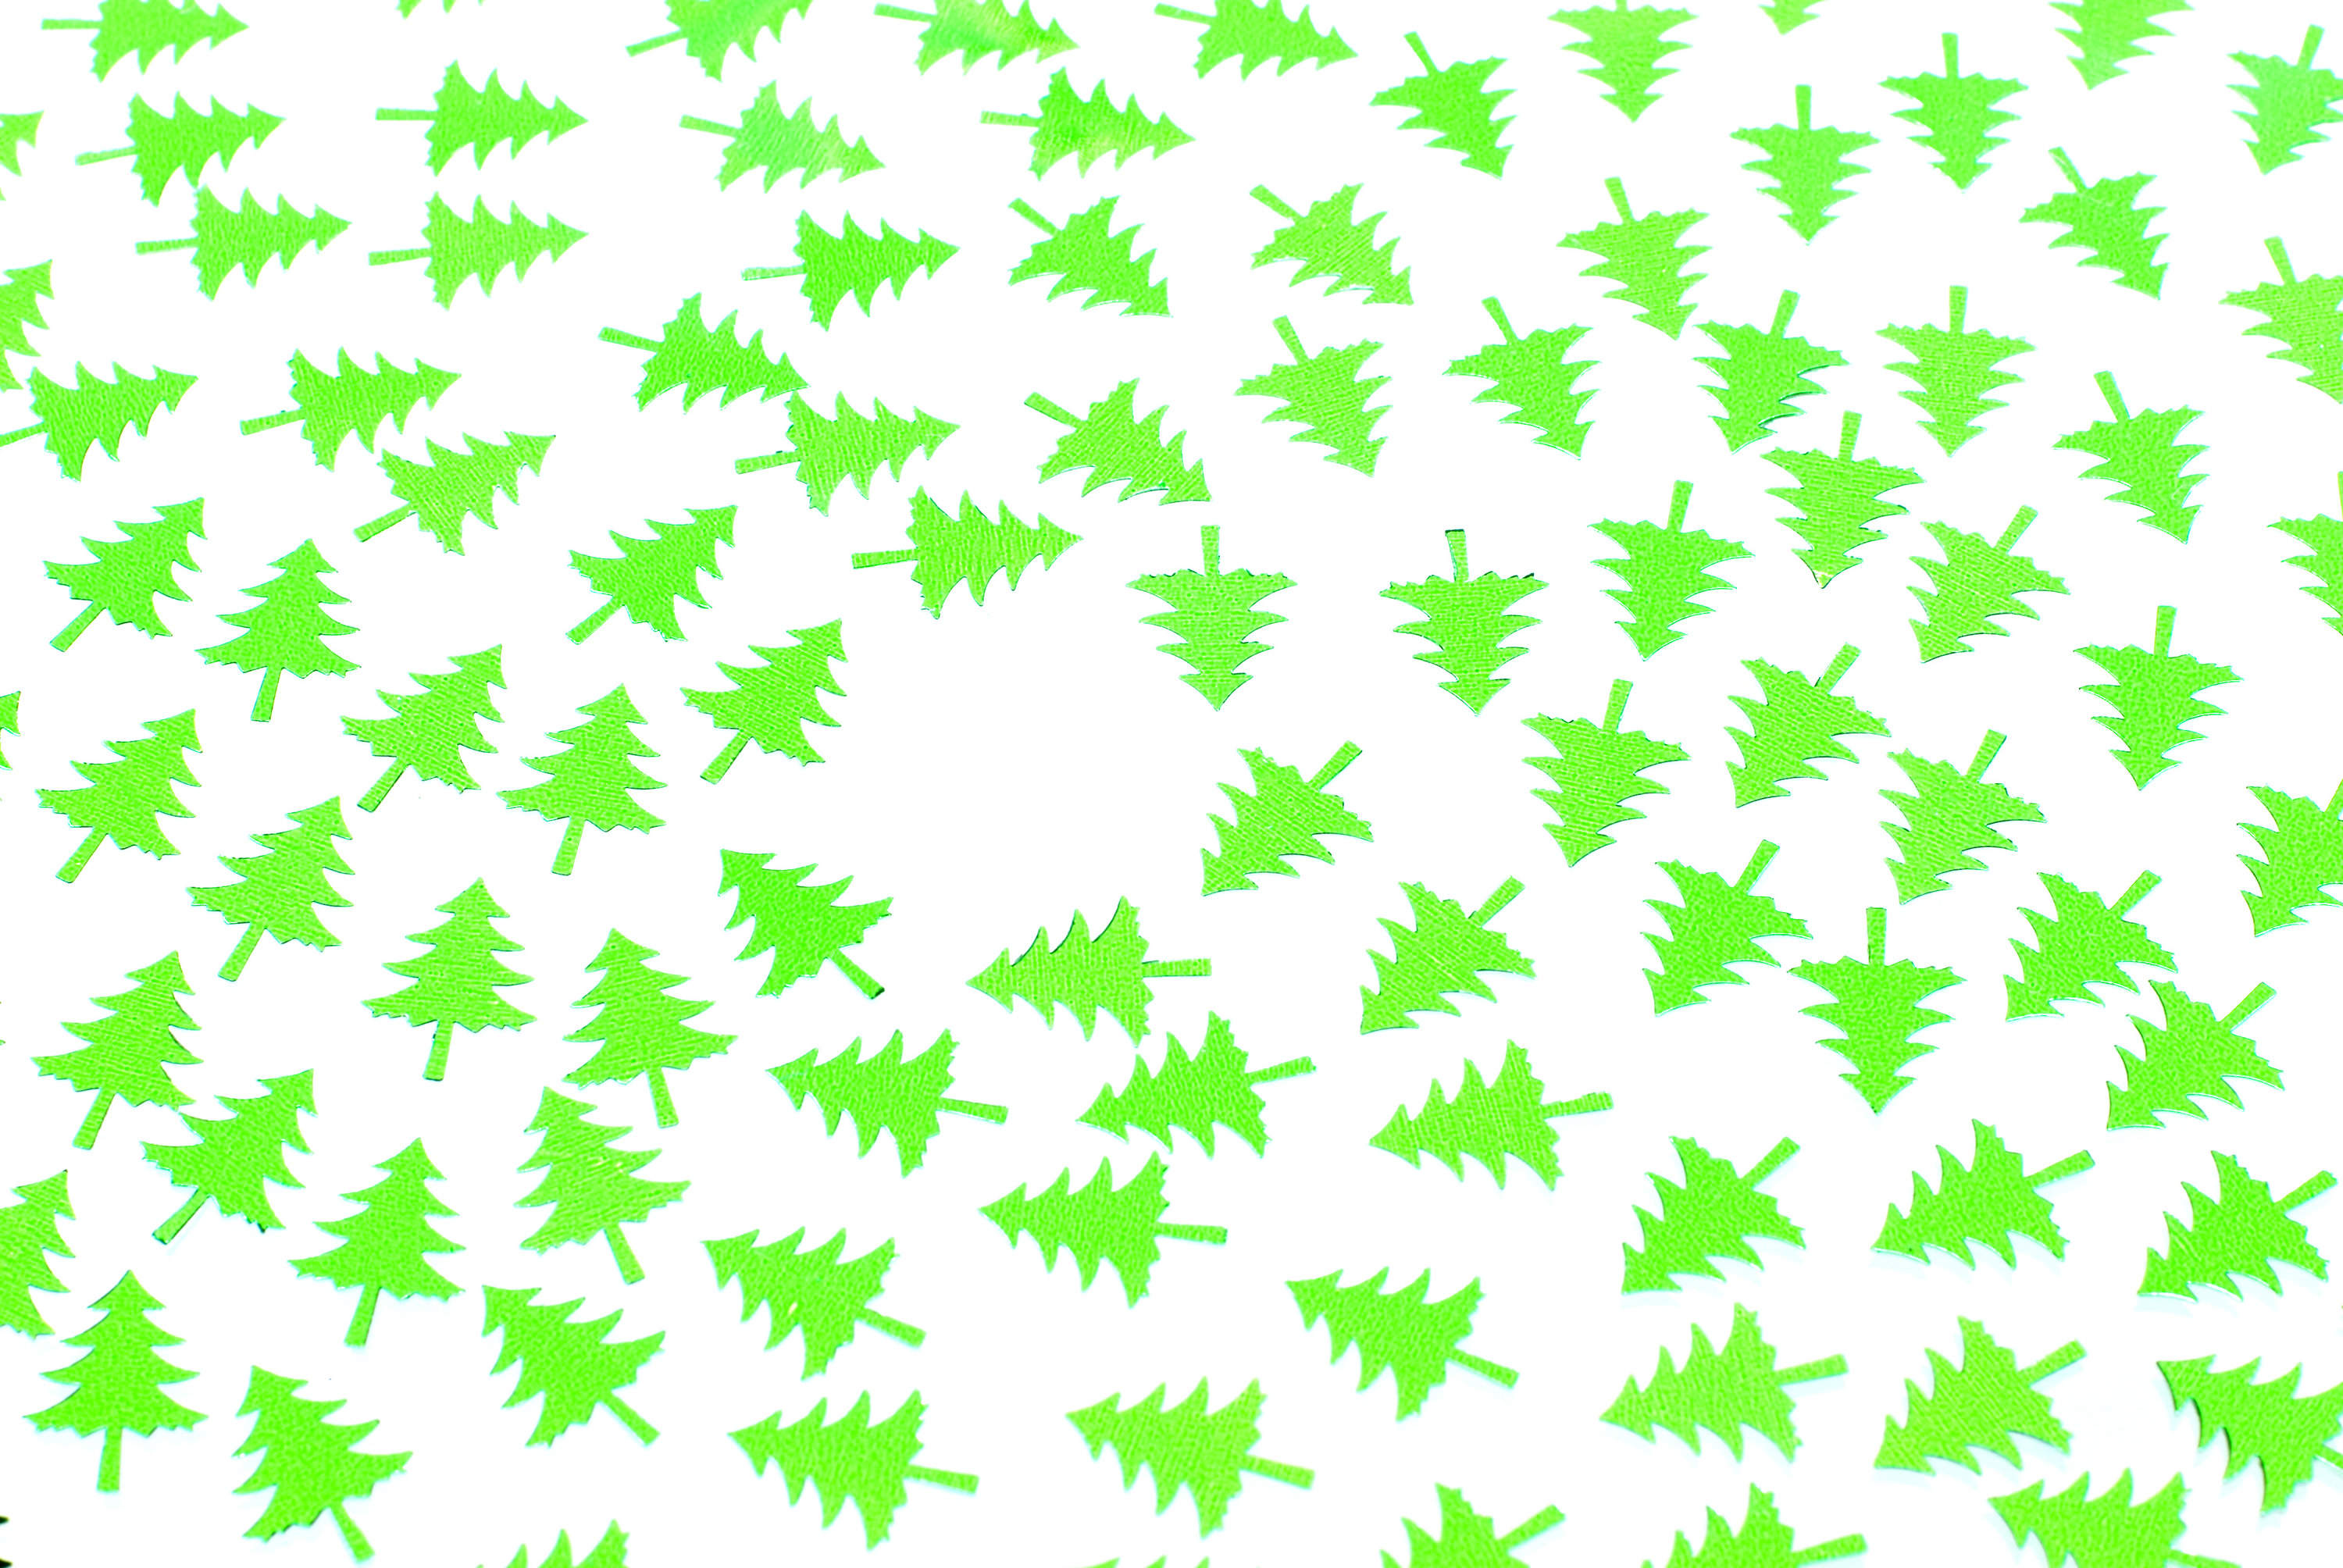 a background of green christmas tree shapes arranged in a spiral pattern